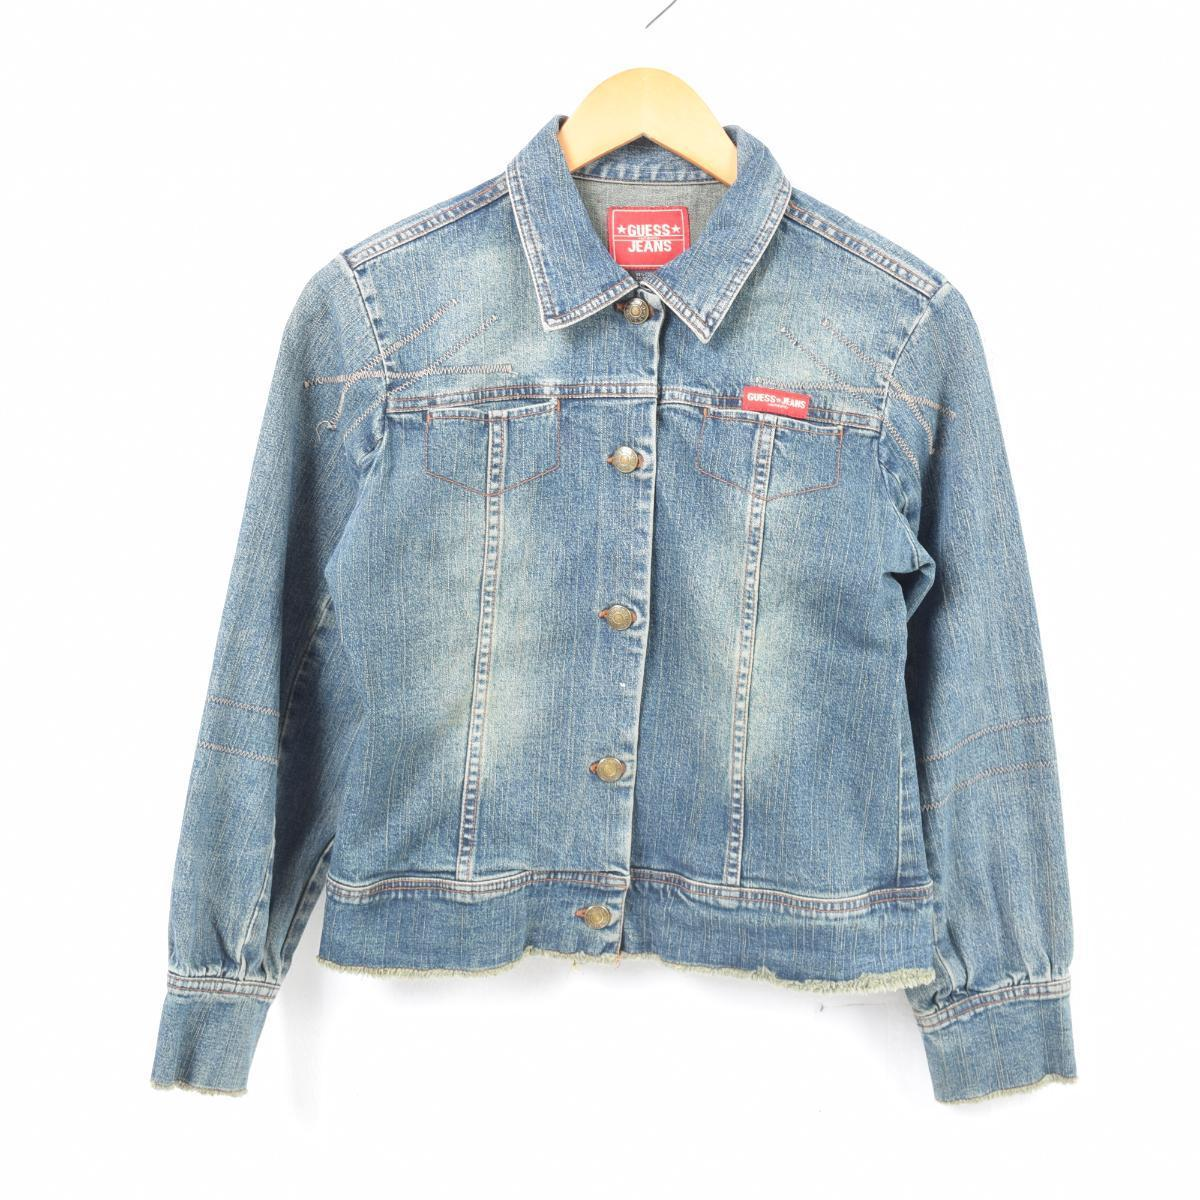 official photos 47491 41f23 ゲス Guess JEANS denim jacket G Jean Lady's M /wan4553